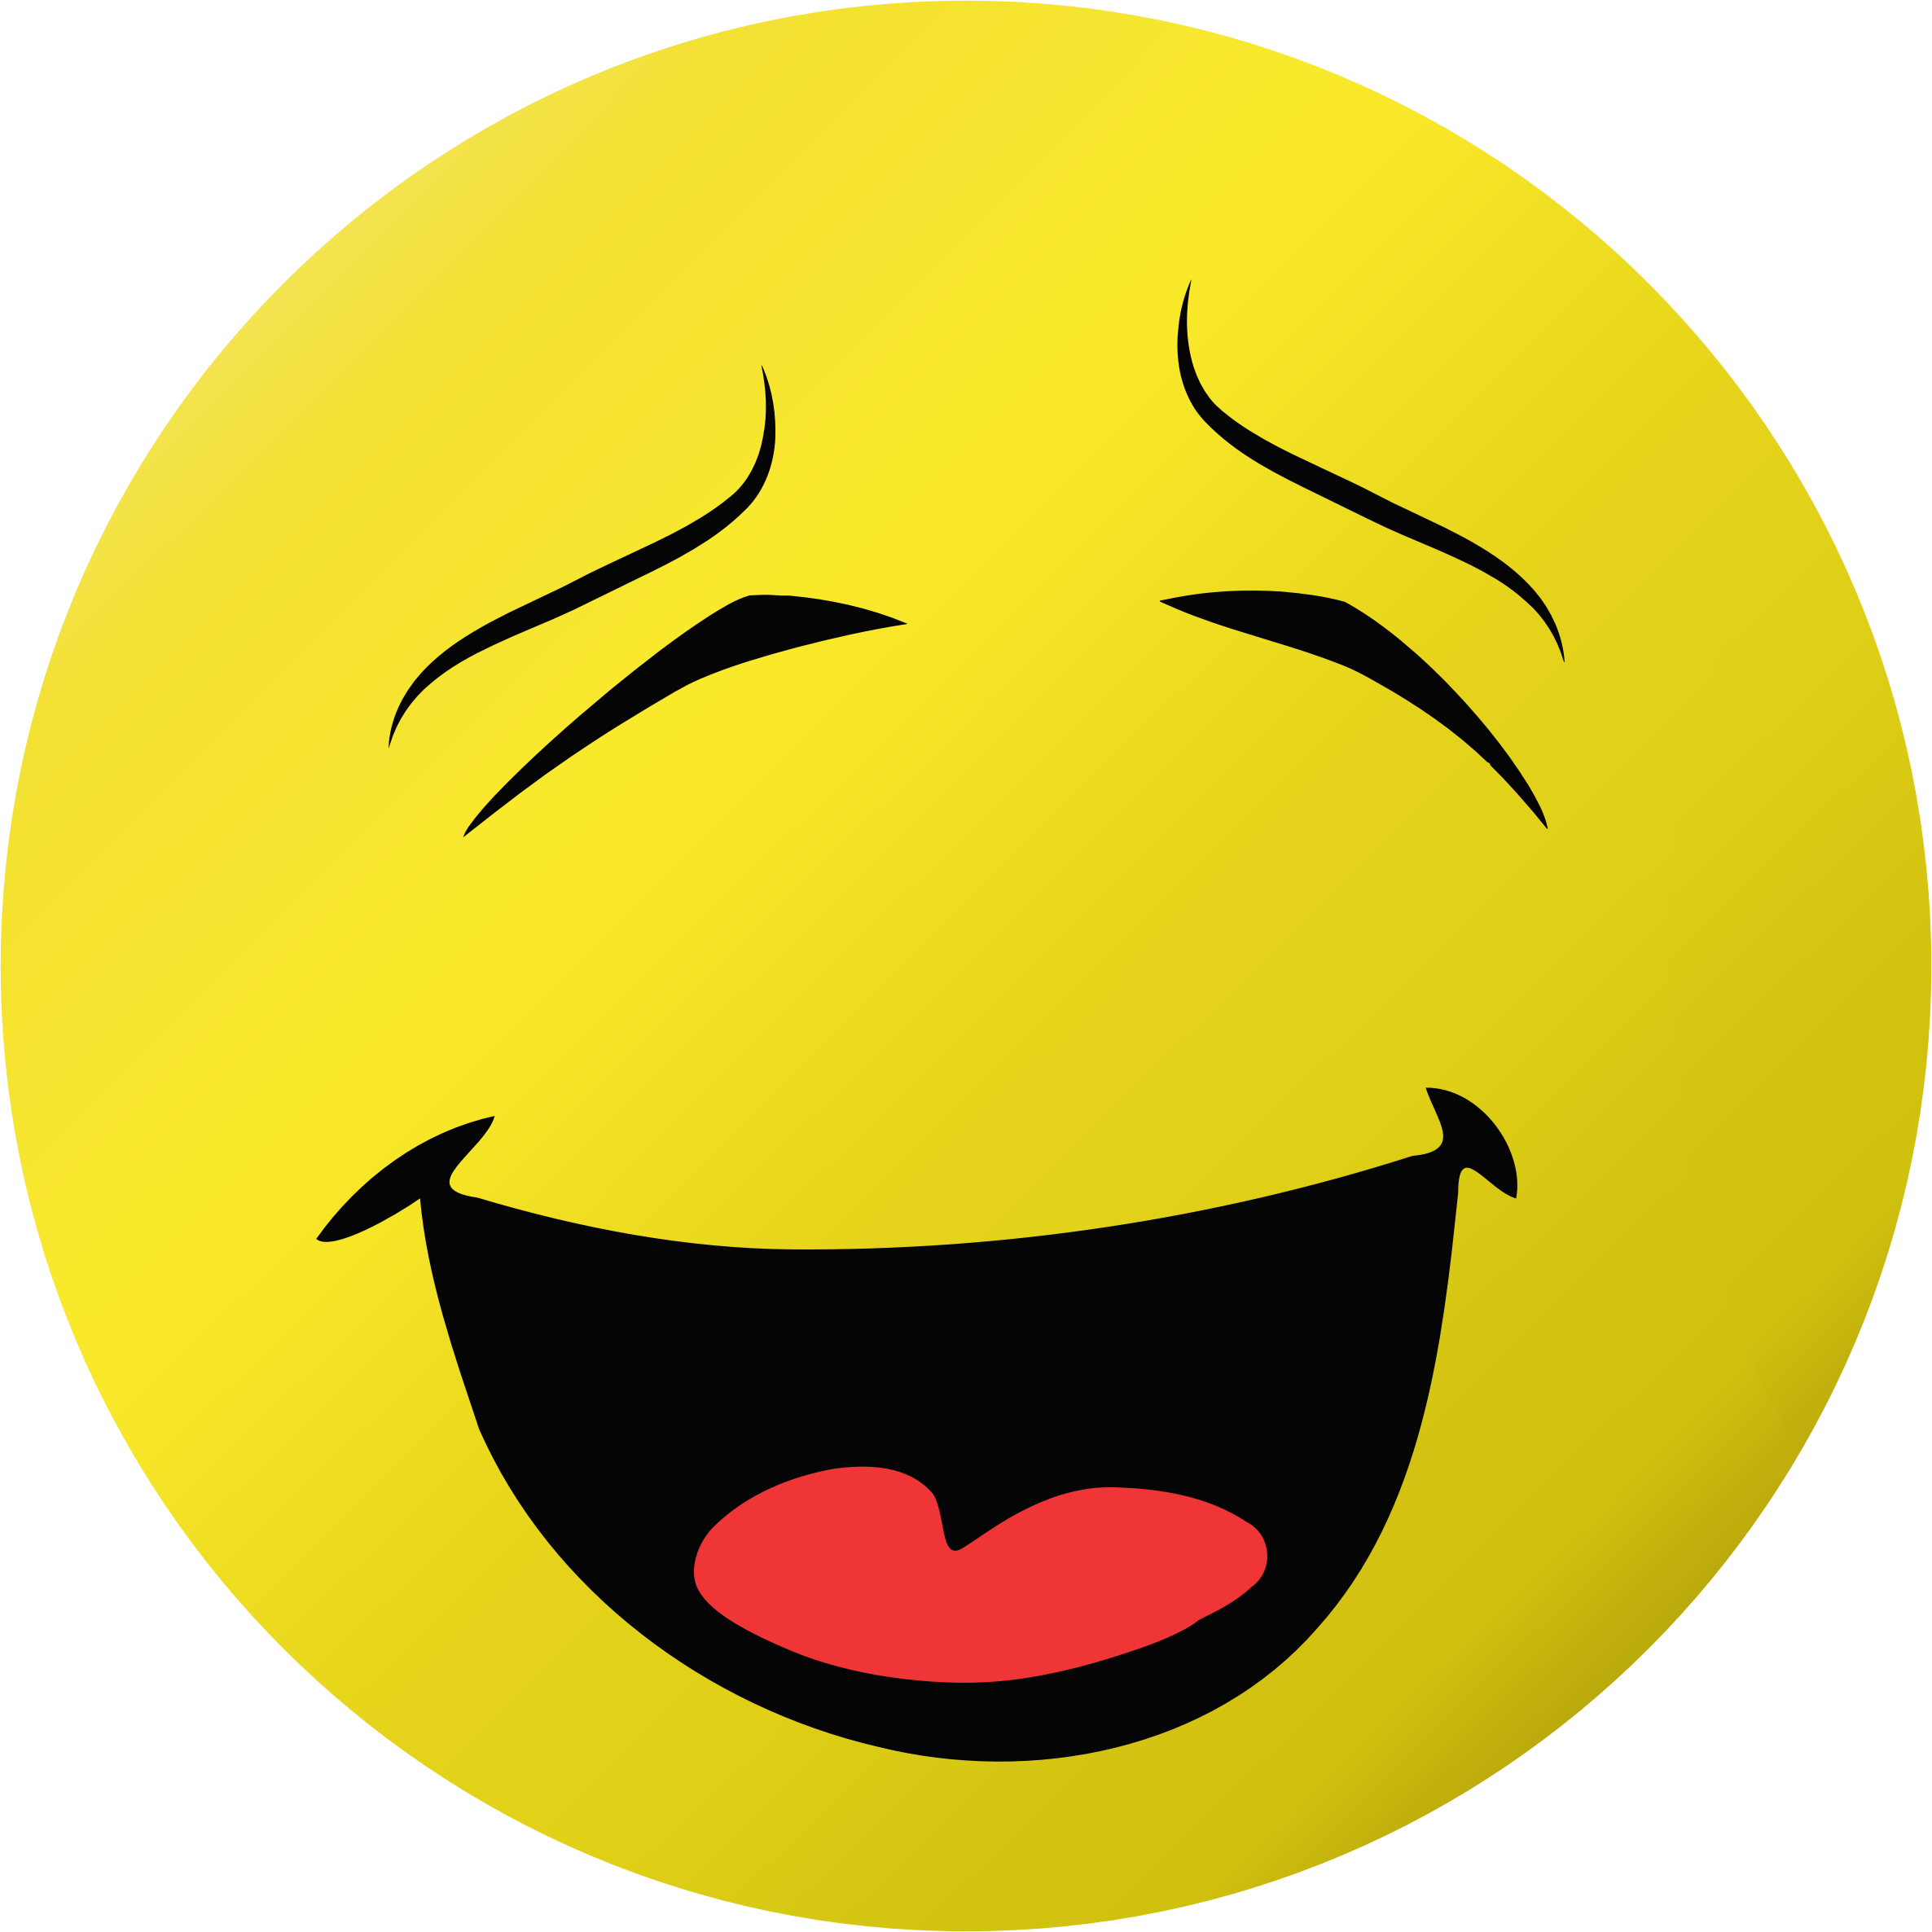 List of Synonyms and Antonyms of the Word: laughing smileys - photo#8